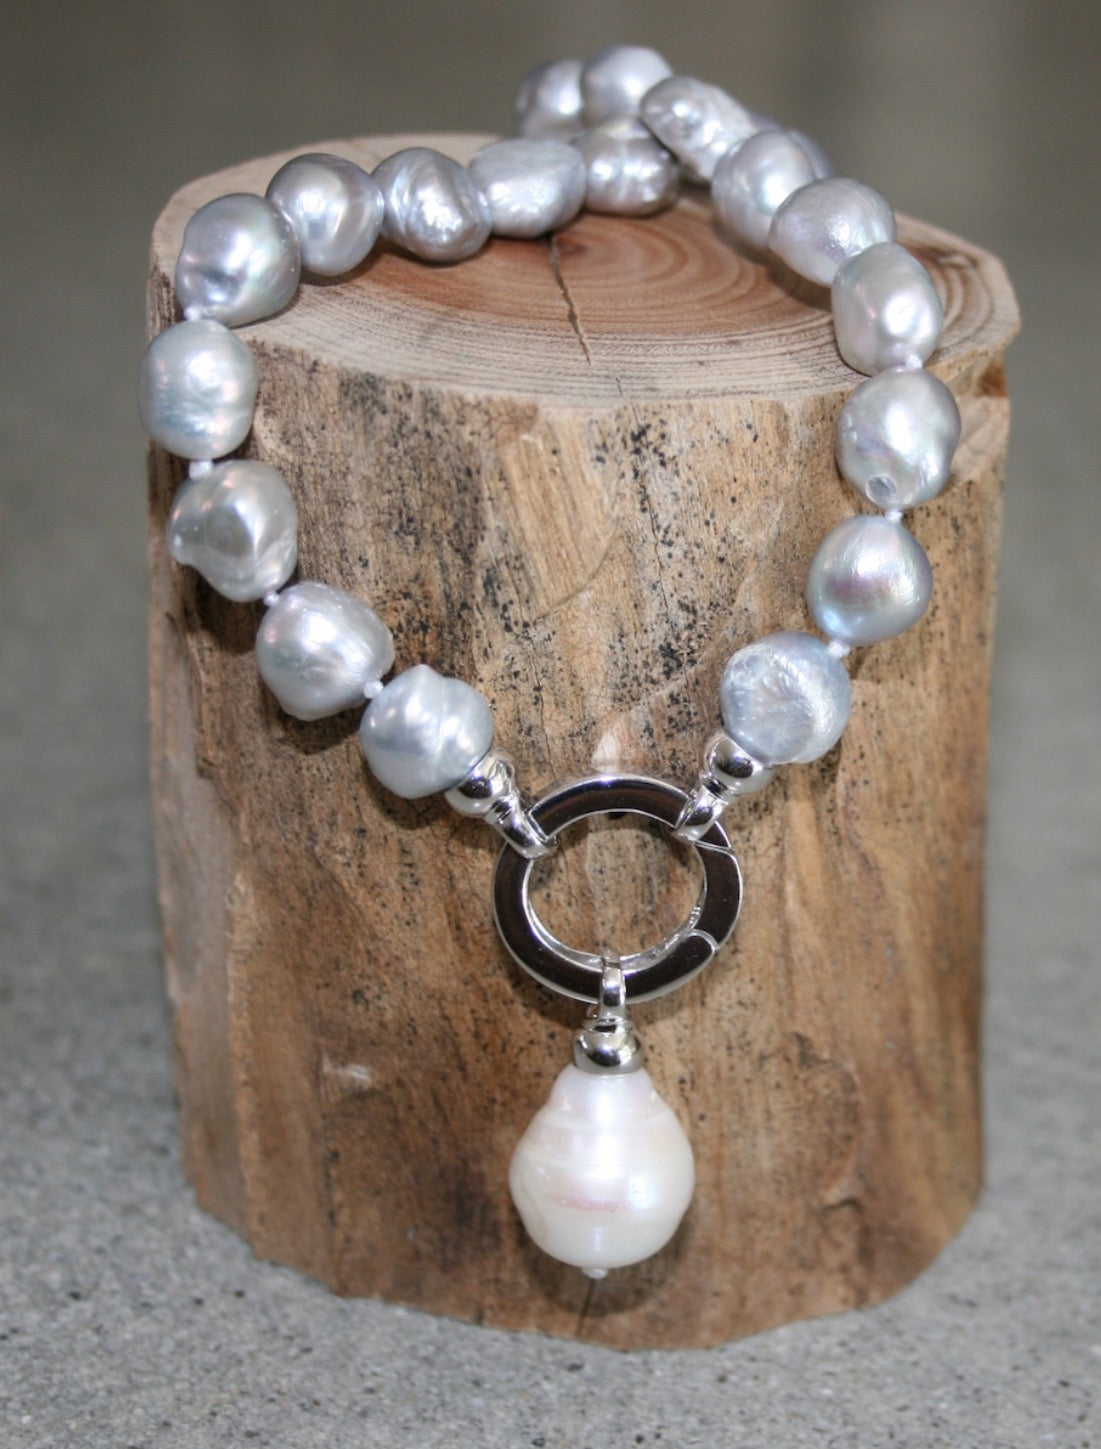 Silver Baroque Pearl Necklace with White Baroque Pearl Charm